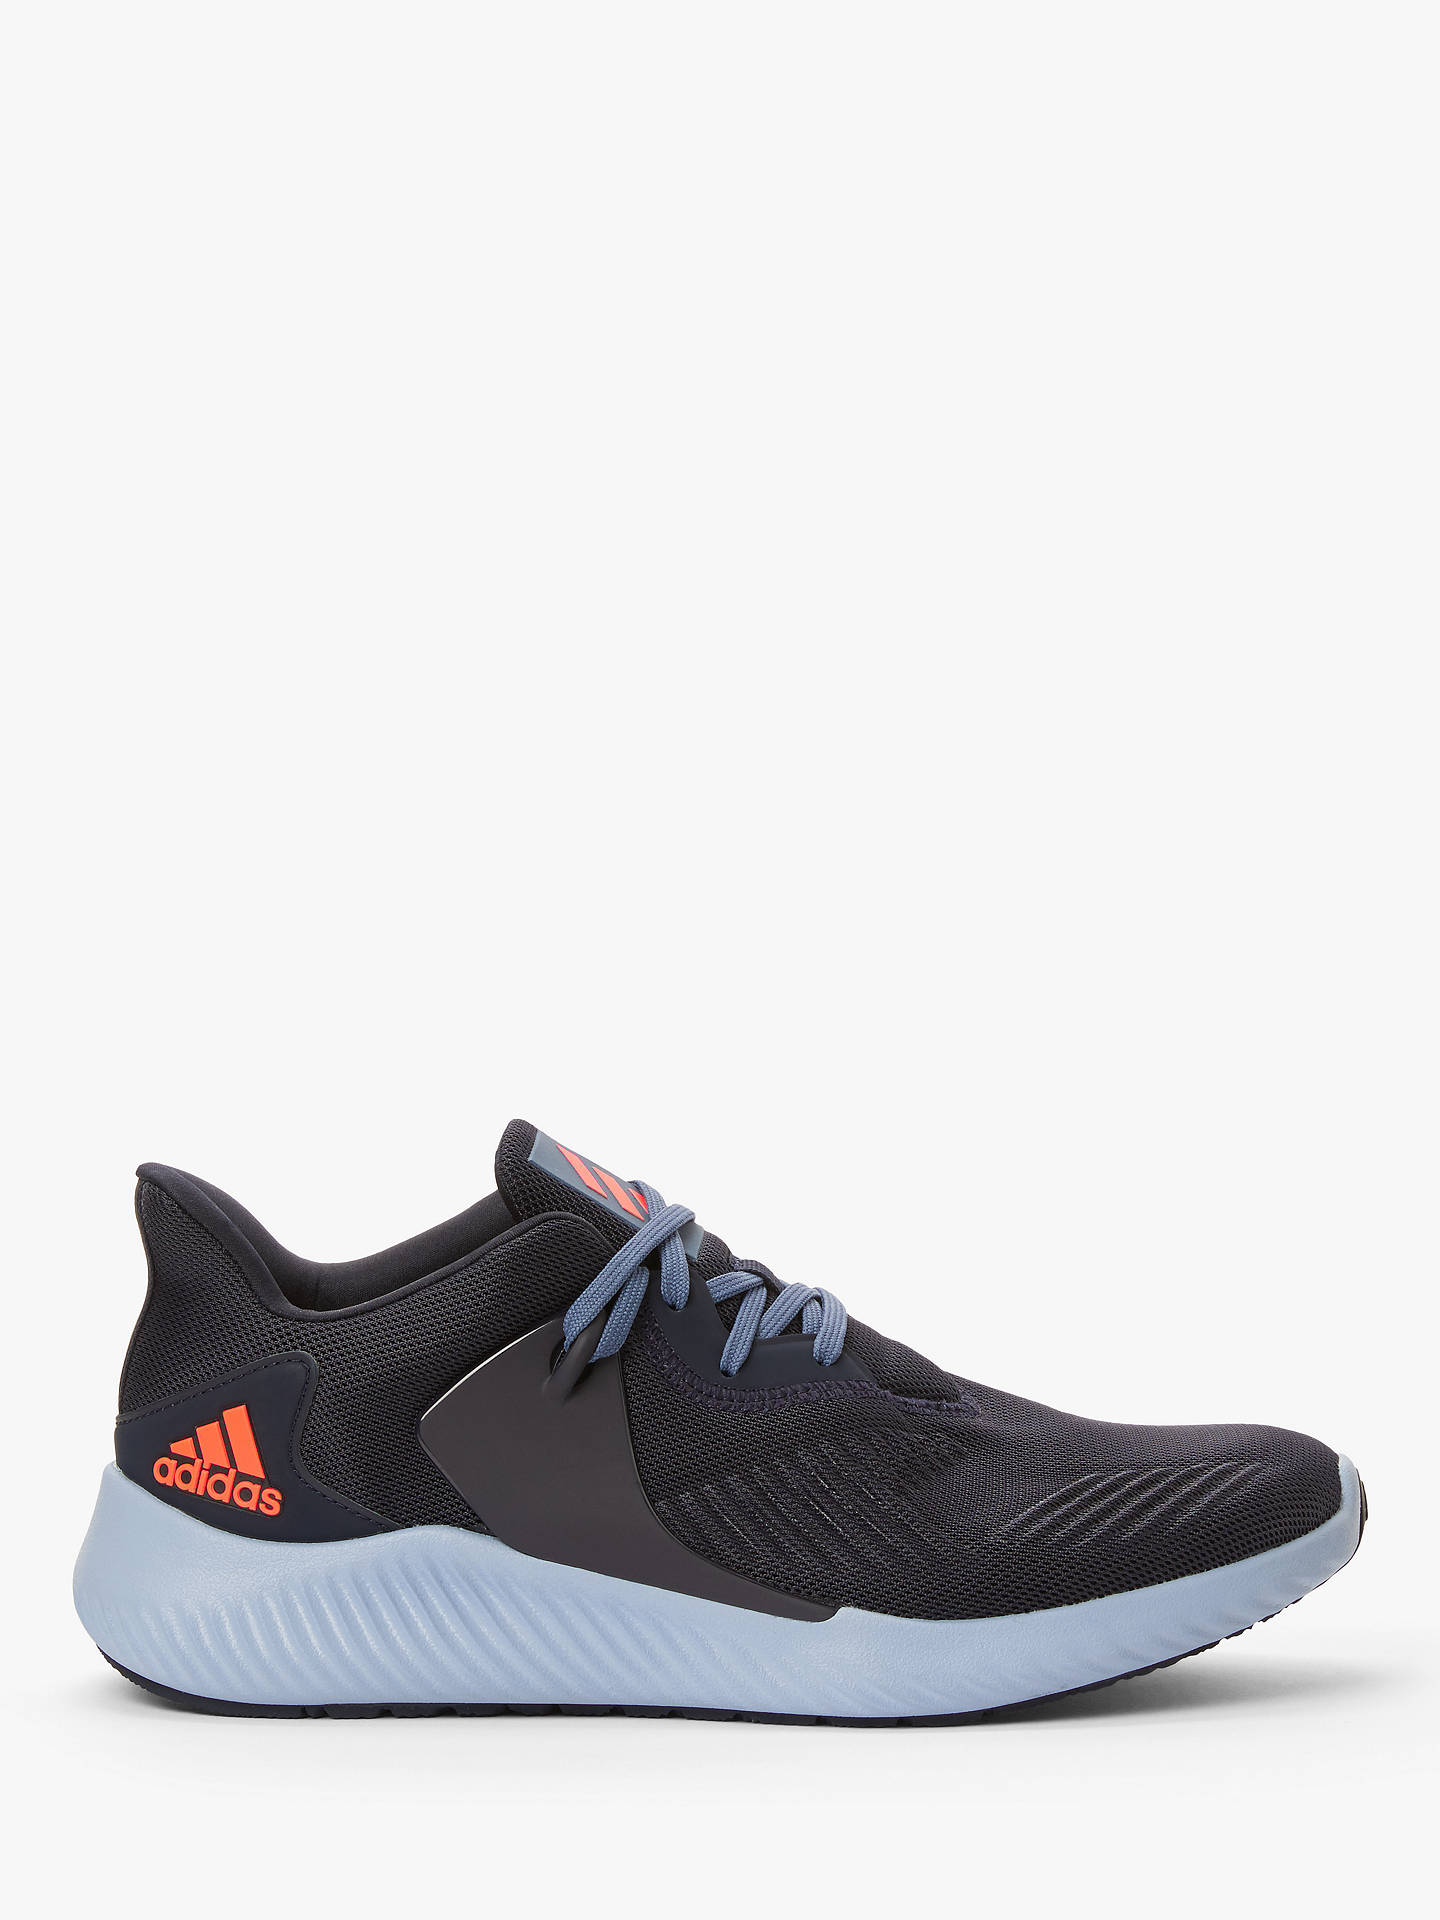 hot sale online db5e3 1d158 adidas Alphabounce RC 2.0 Men's Running Shoes, Legend Ink/Solar Orange/Glow  Blue